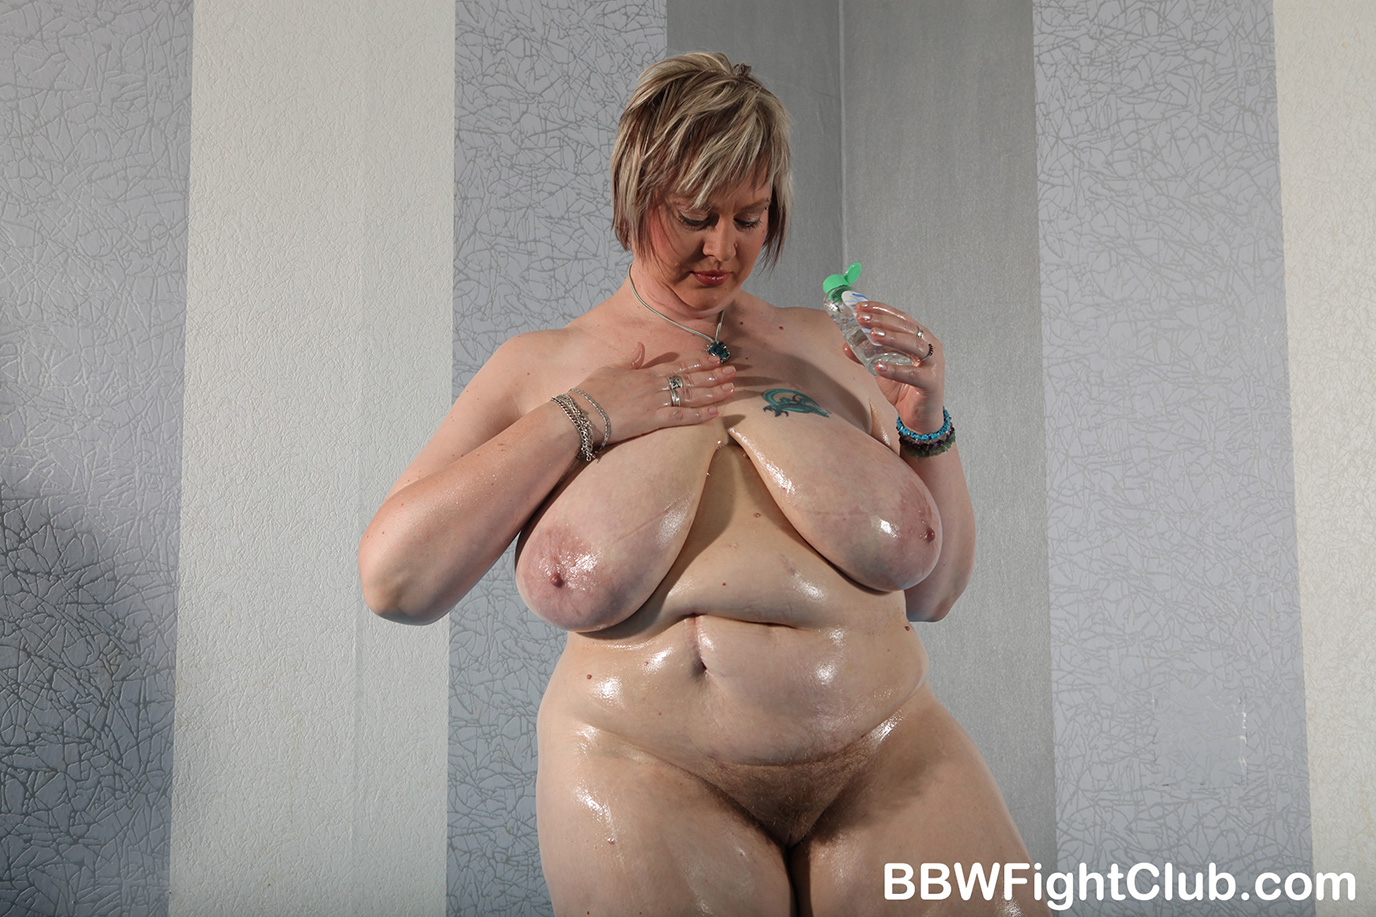 Naked fatties monika and jitka wrestling at bbw fight club 7